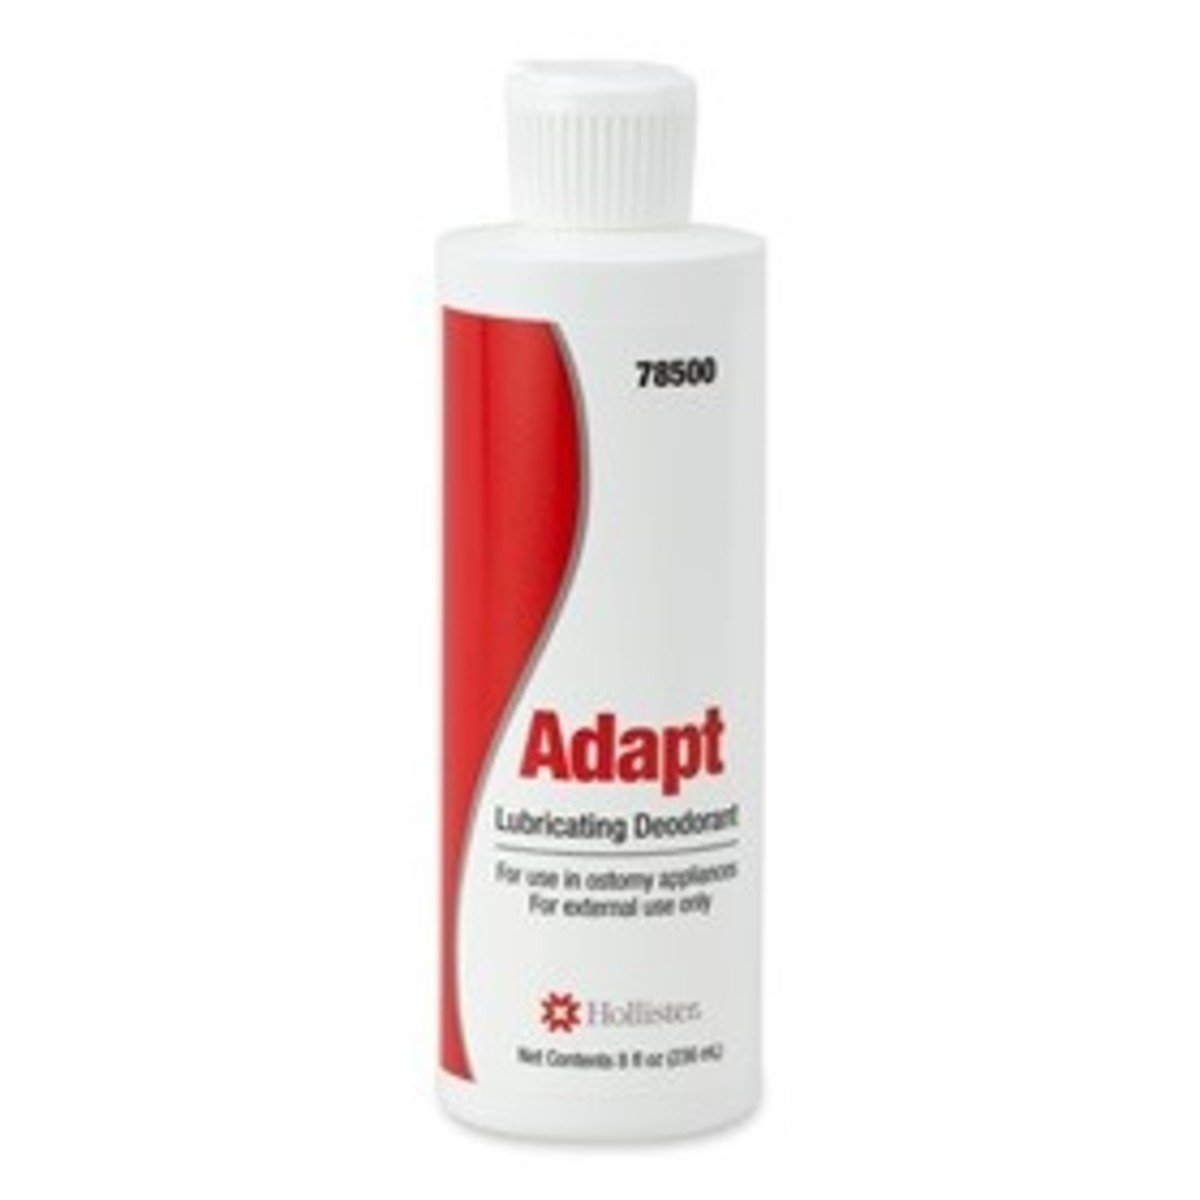 Adapt™ lubricating deodorant is used inside the pouch to neutralizer odor.